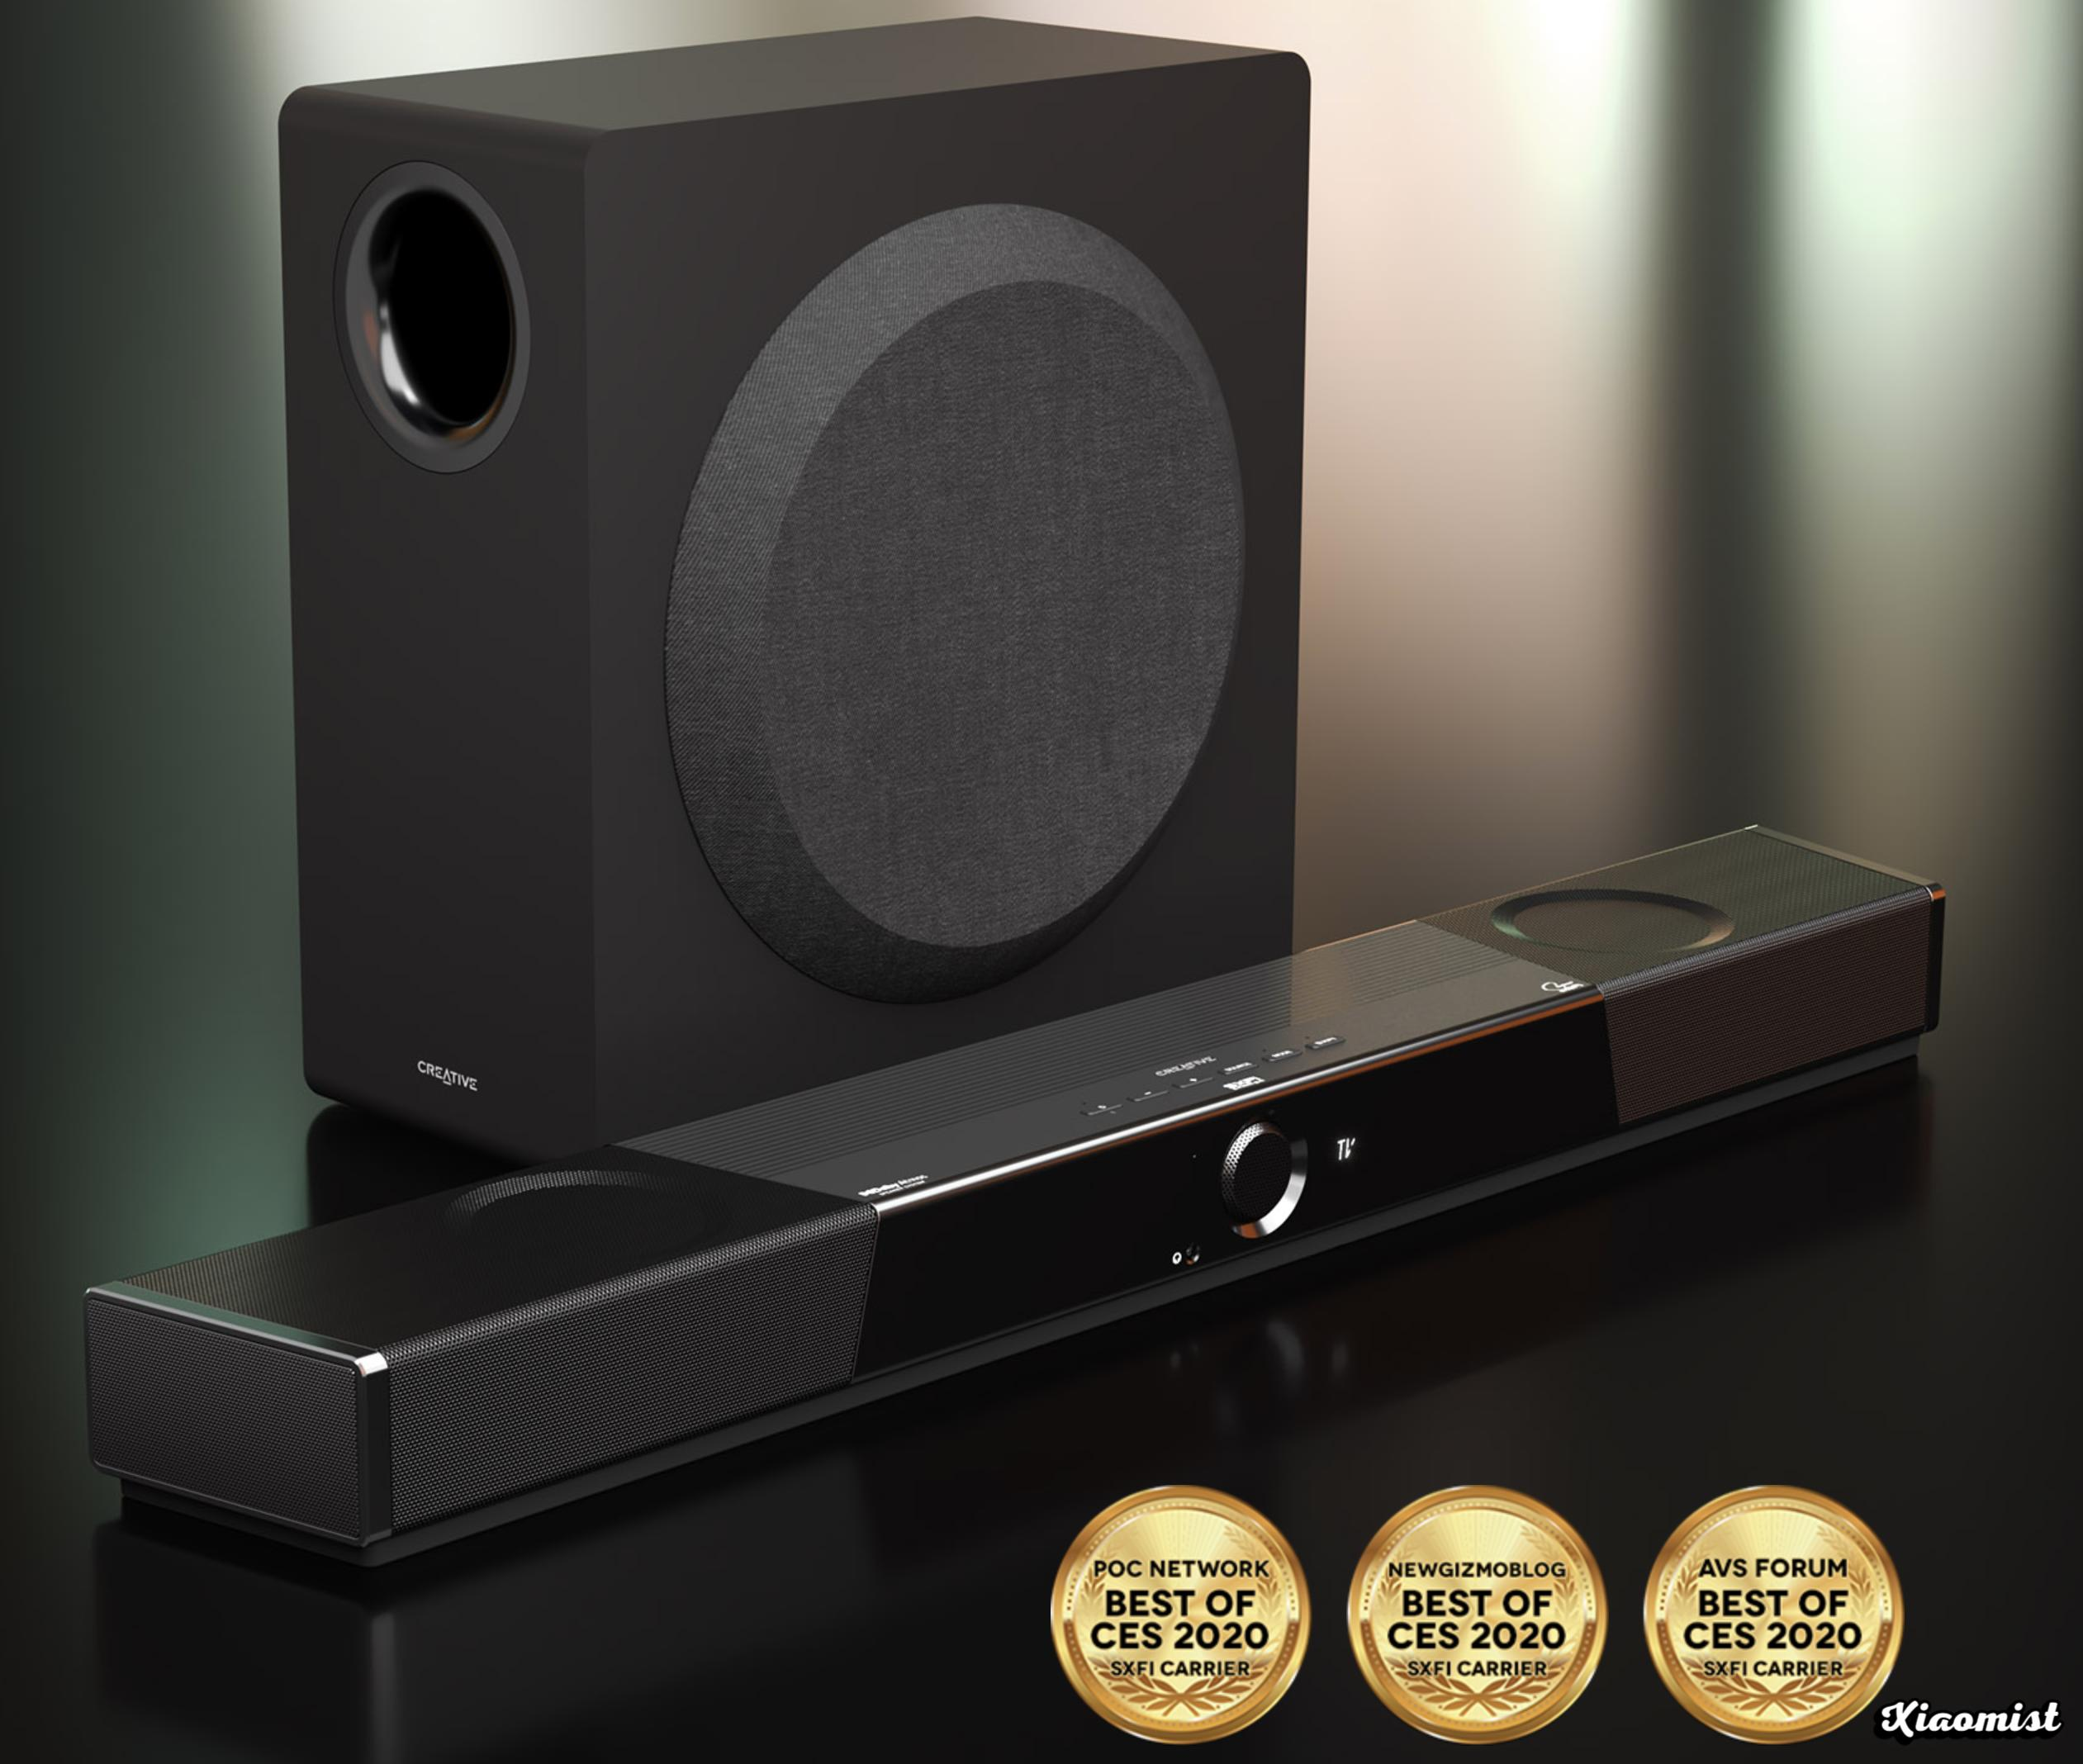 Soundbar with Dolby Atmos speaker system, wireless subwoofer and Super X-Fi Headphone Holography